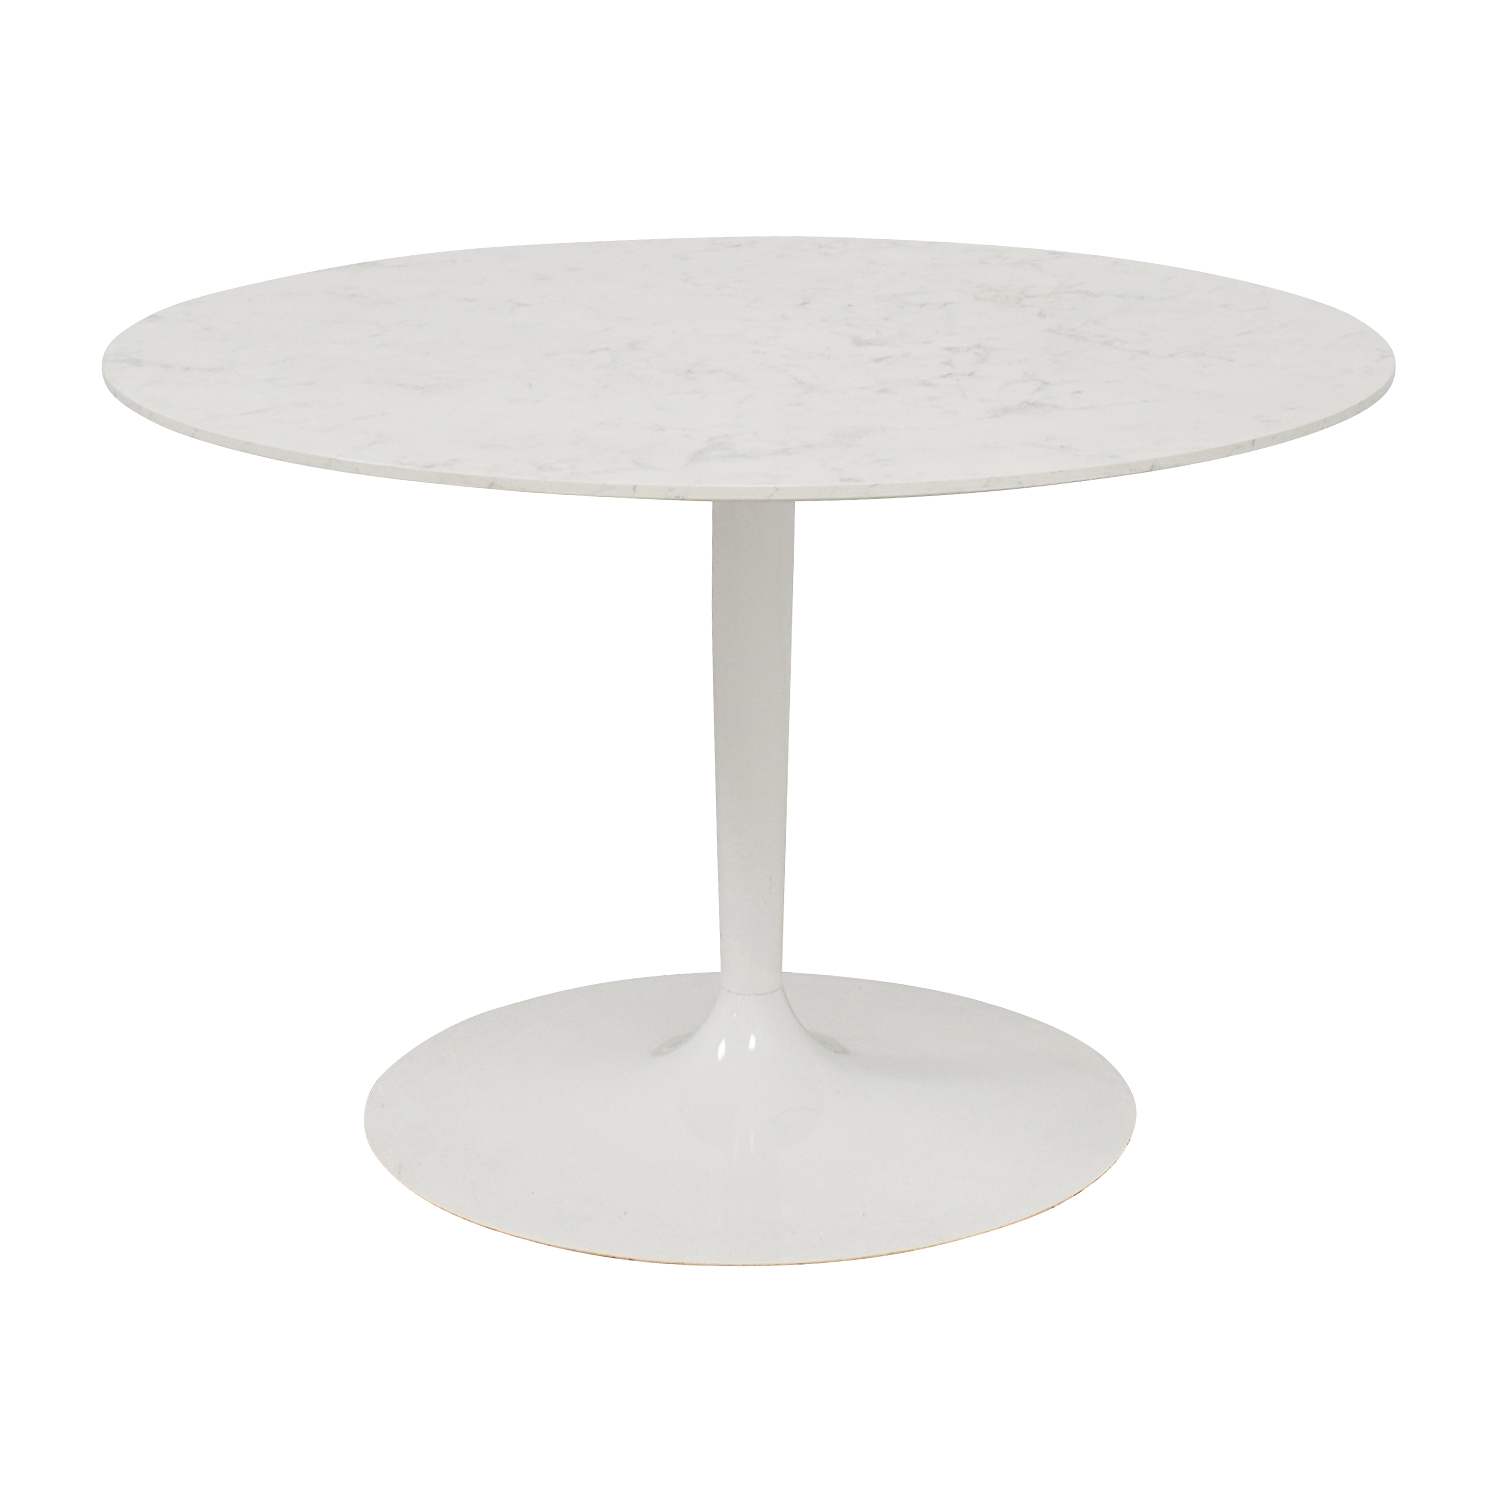 Lippa Lippa 48 Inch Artificial Marbel Dining Table discount